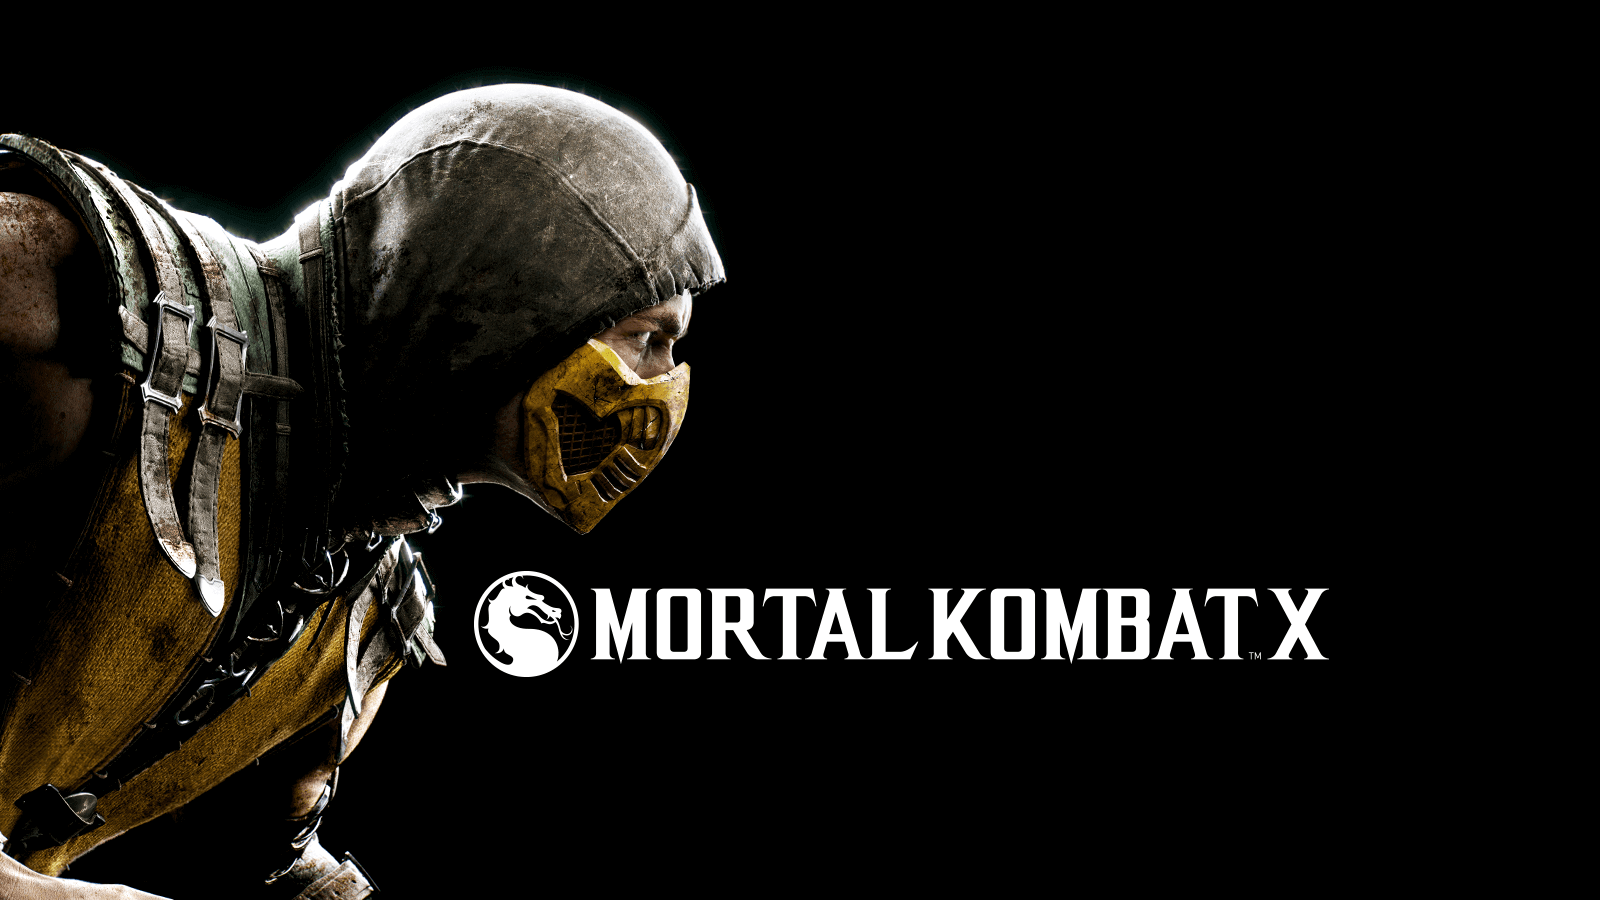 New Mortal Kombat X Trailer Released